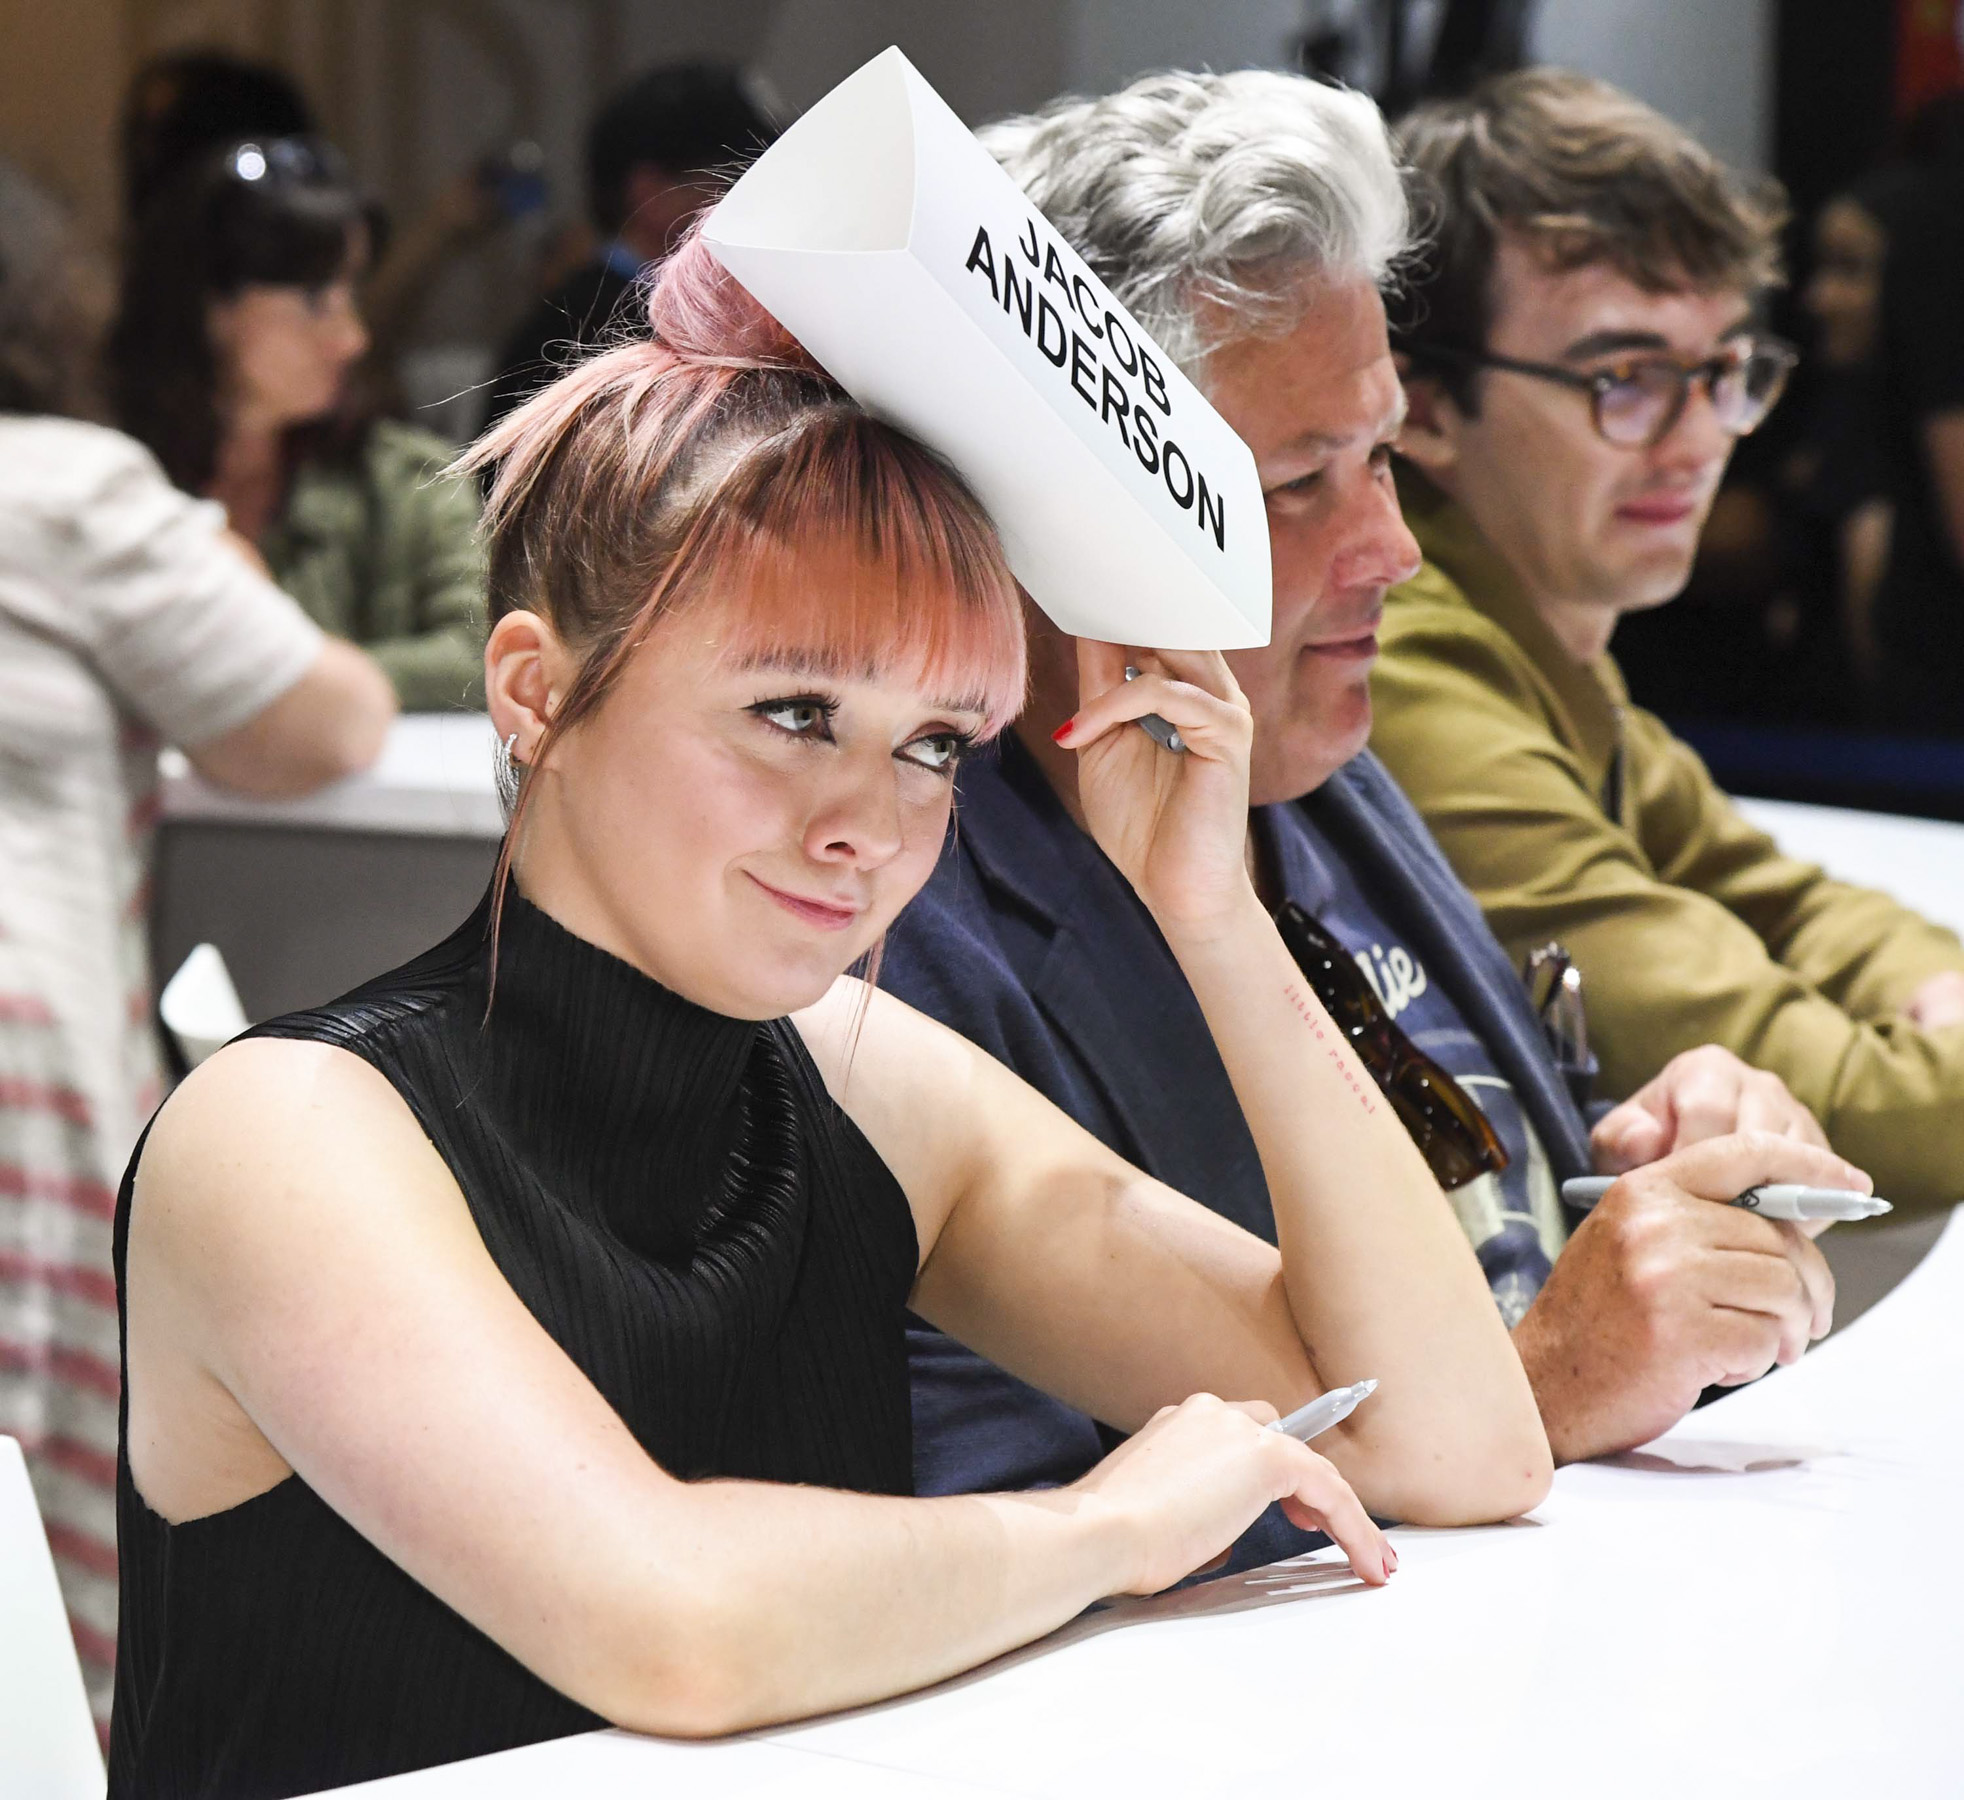 """SAN DIEGO, CALIFORNIA - JULY 19: Maisie Williams at """"Game Of Thrones"""" Comic Con Autograph Signing 2019 on July 19, 2019 in San Diego, California. (Photo by Jeff Kravitz/FilmMagic for HBO)"""